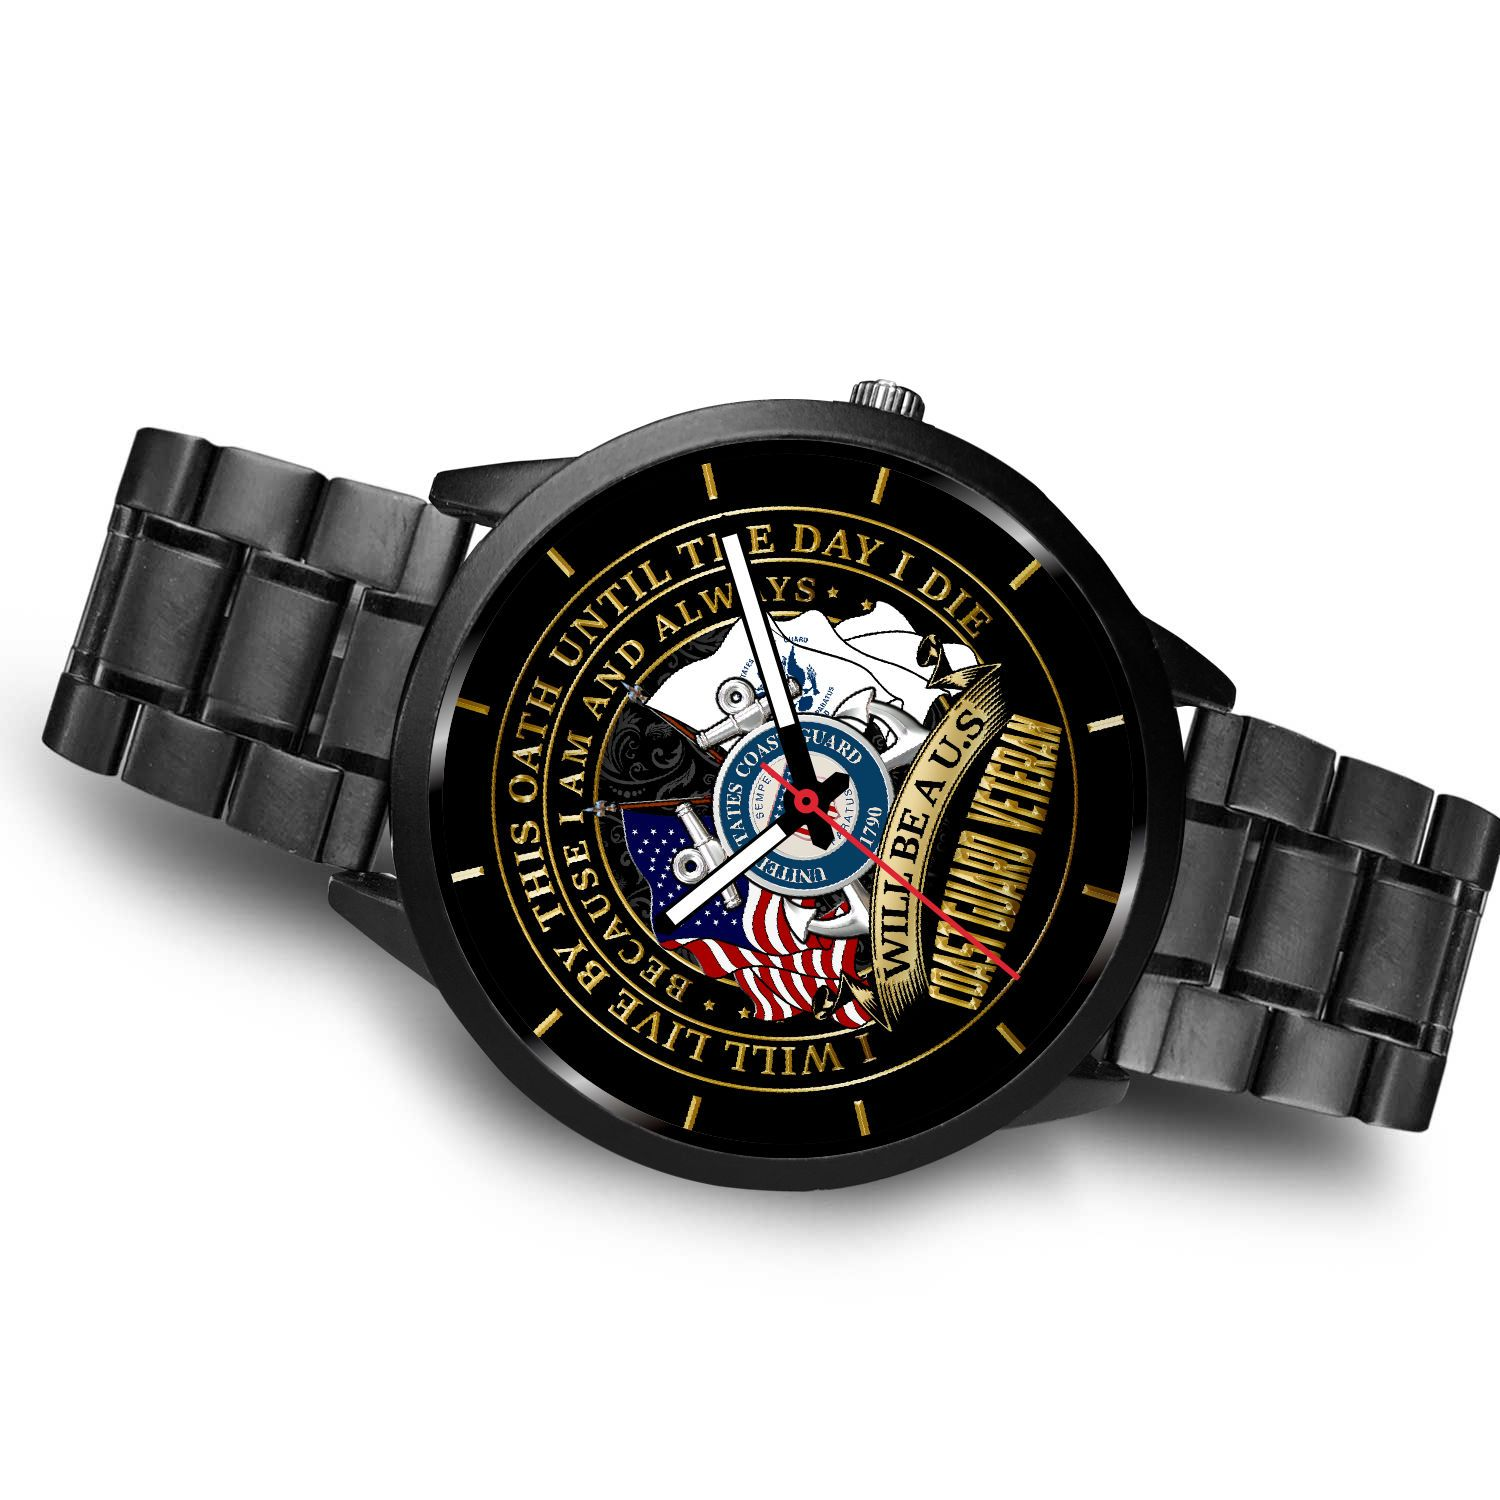 i-will-live_23c92ade-ed33-4087-e87a-9a9136c93c74 I WILL LIVE BY THIS OATH UNTIL THE DAY I DIE BECAUSE I AM AND ALWAYS WILL BE A U.S COAST GUARD VETERAN WATCH  %tag